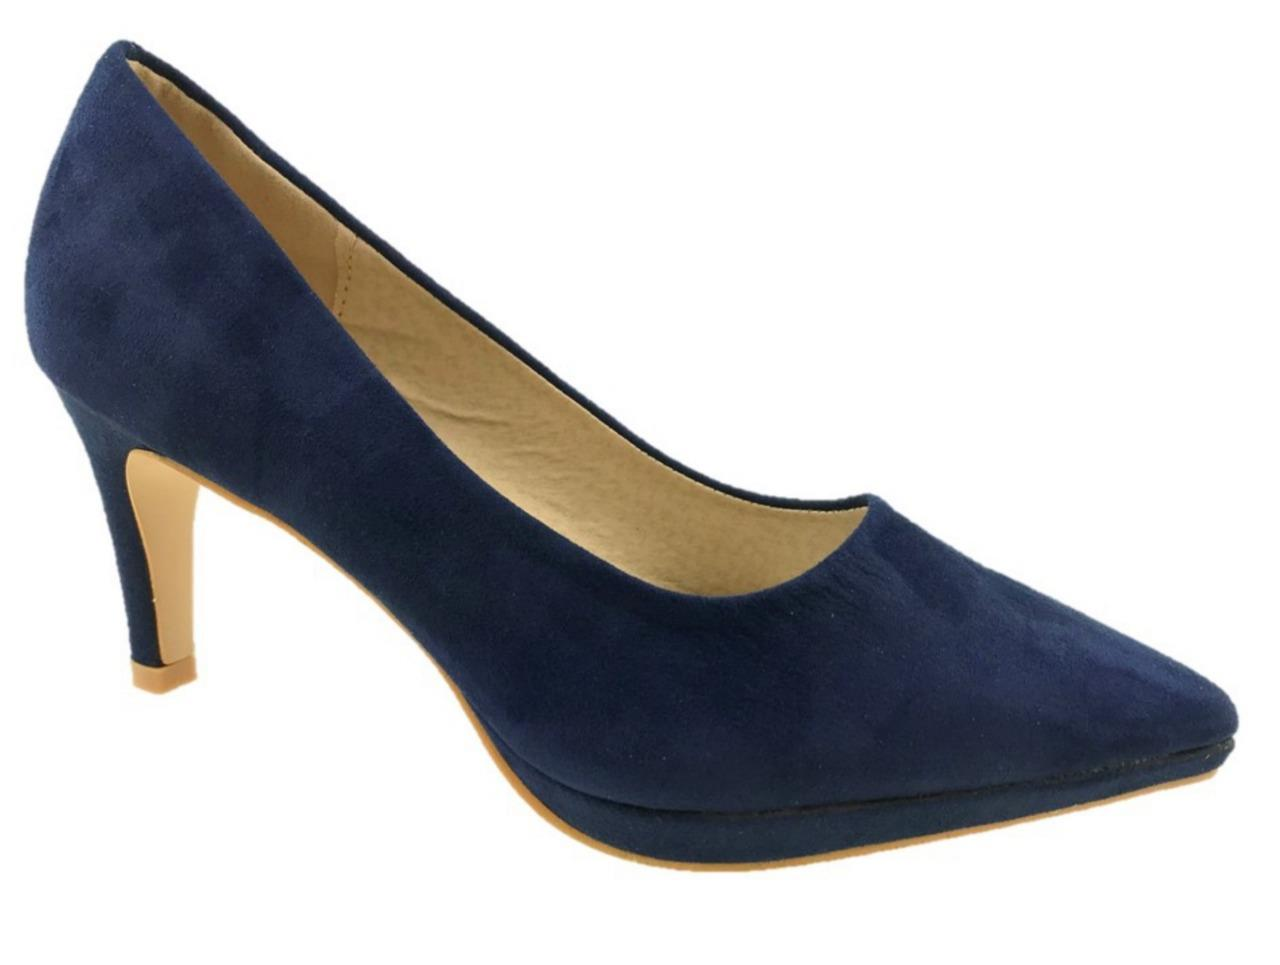 LADIES FASHION FAUX SUEDE SHOES LEATHER INSOLE SLIP ON COURT SHOES SUEDE NAVY f12777